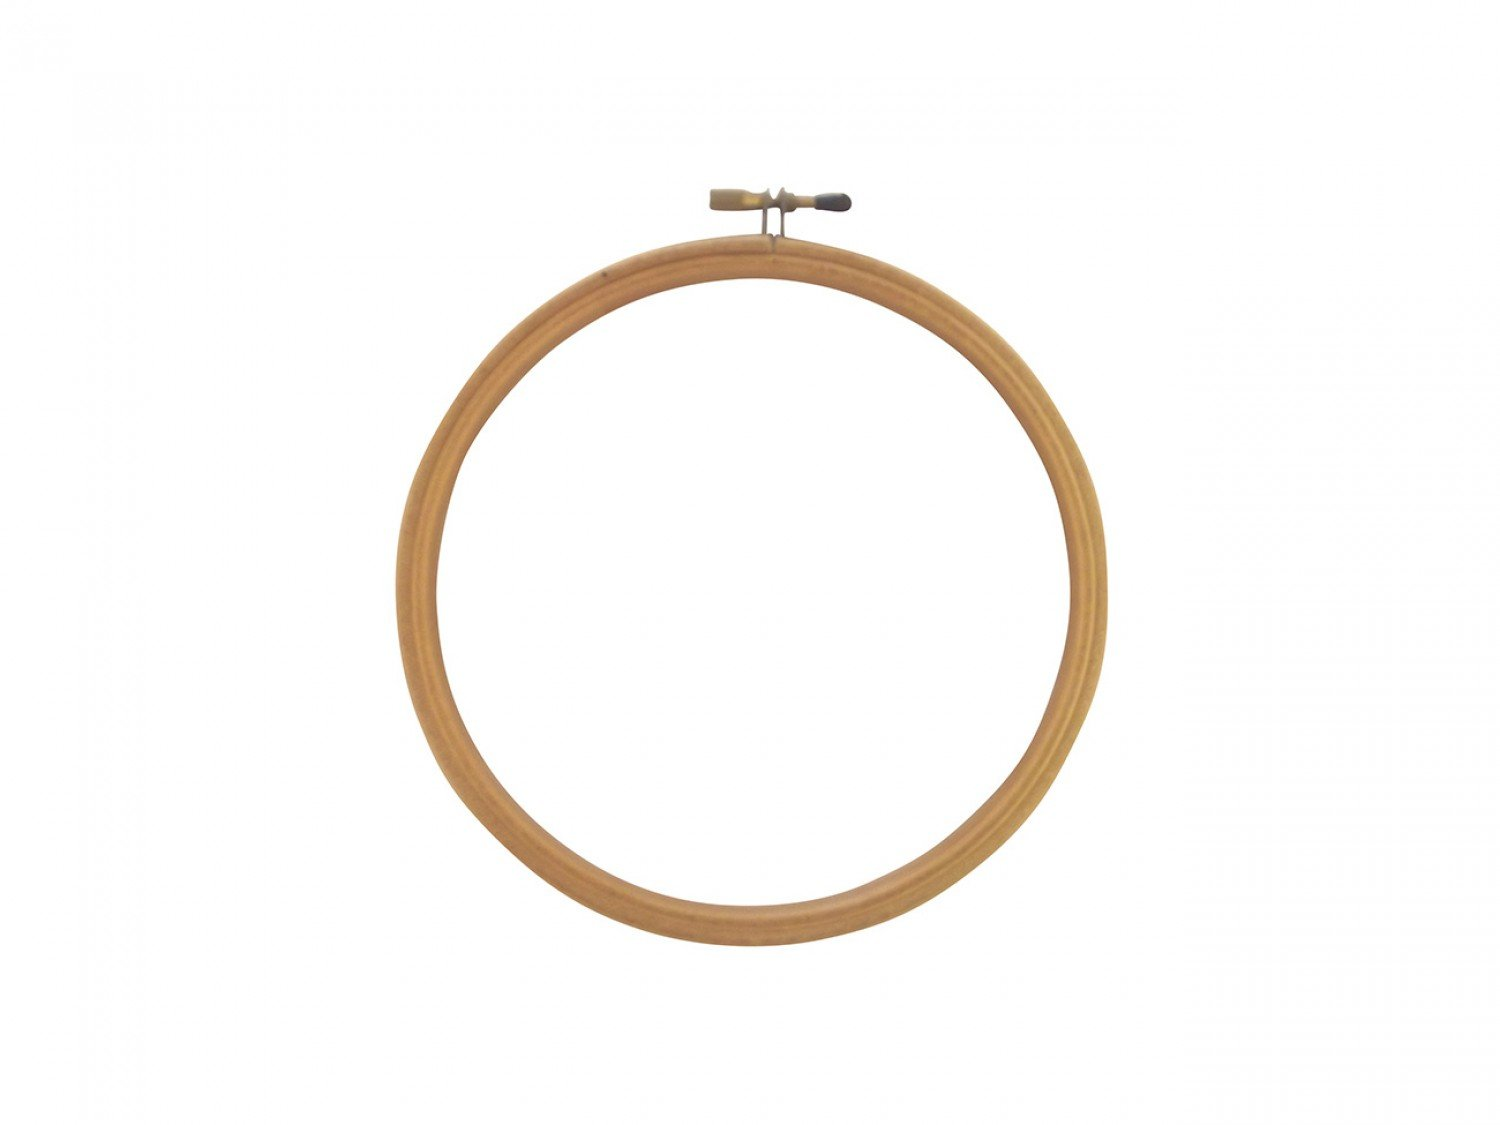 Wood Embroidery Hoop 4 Round